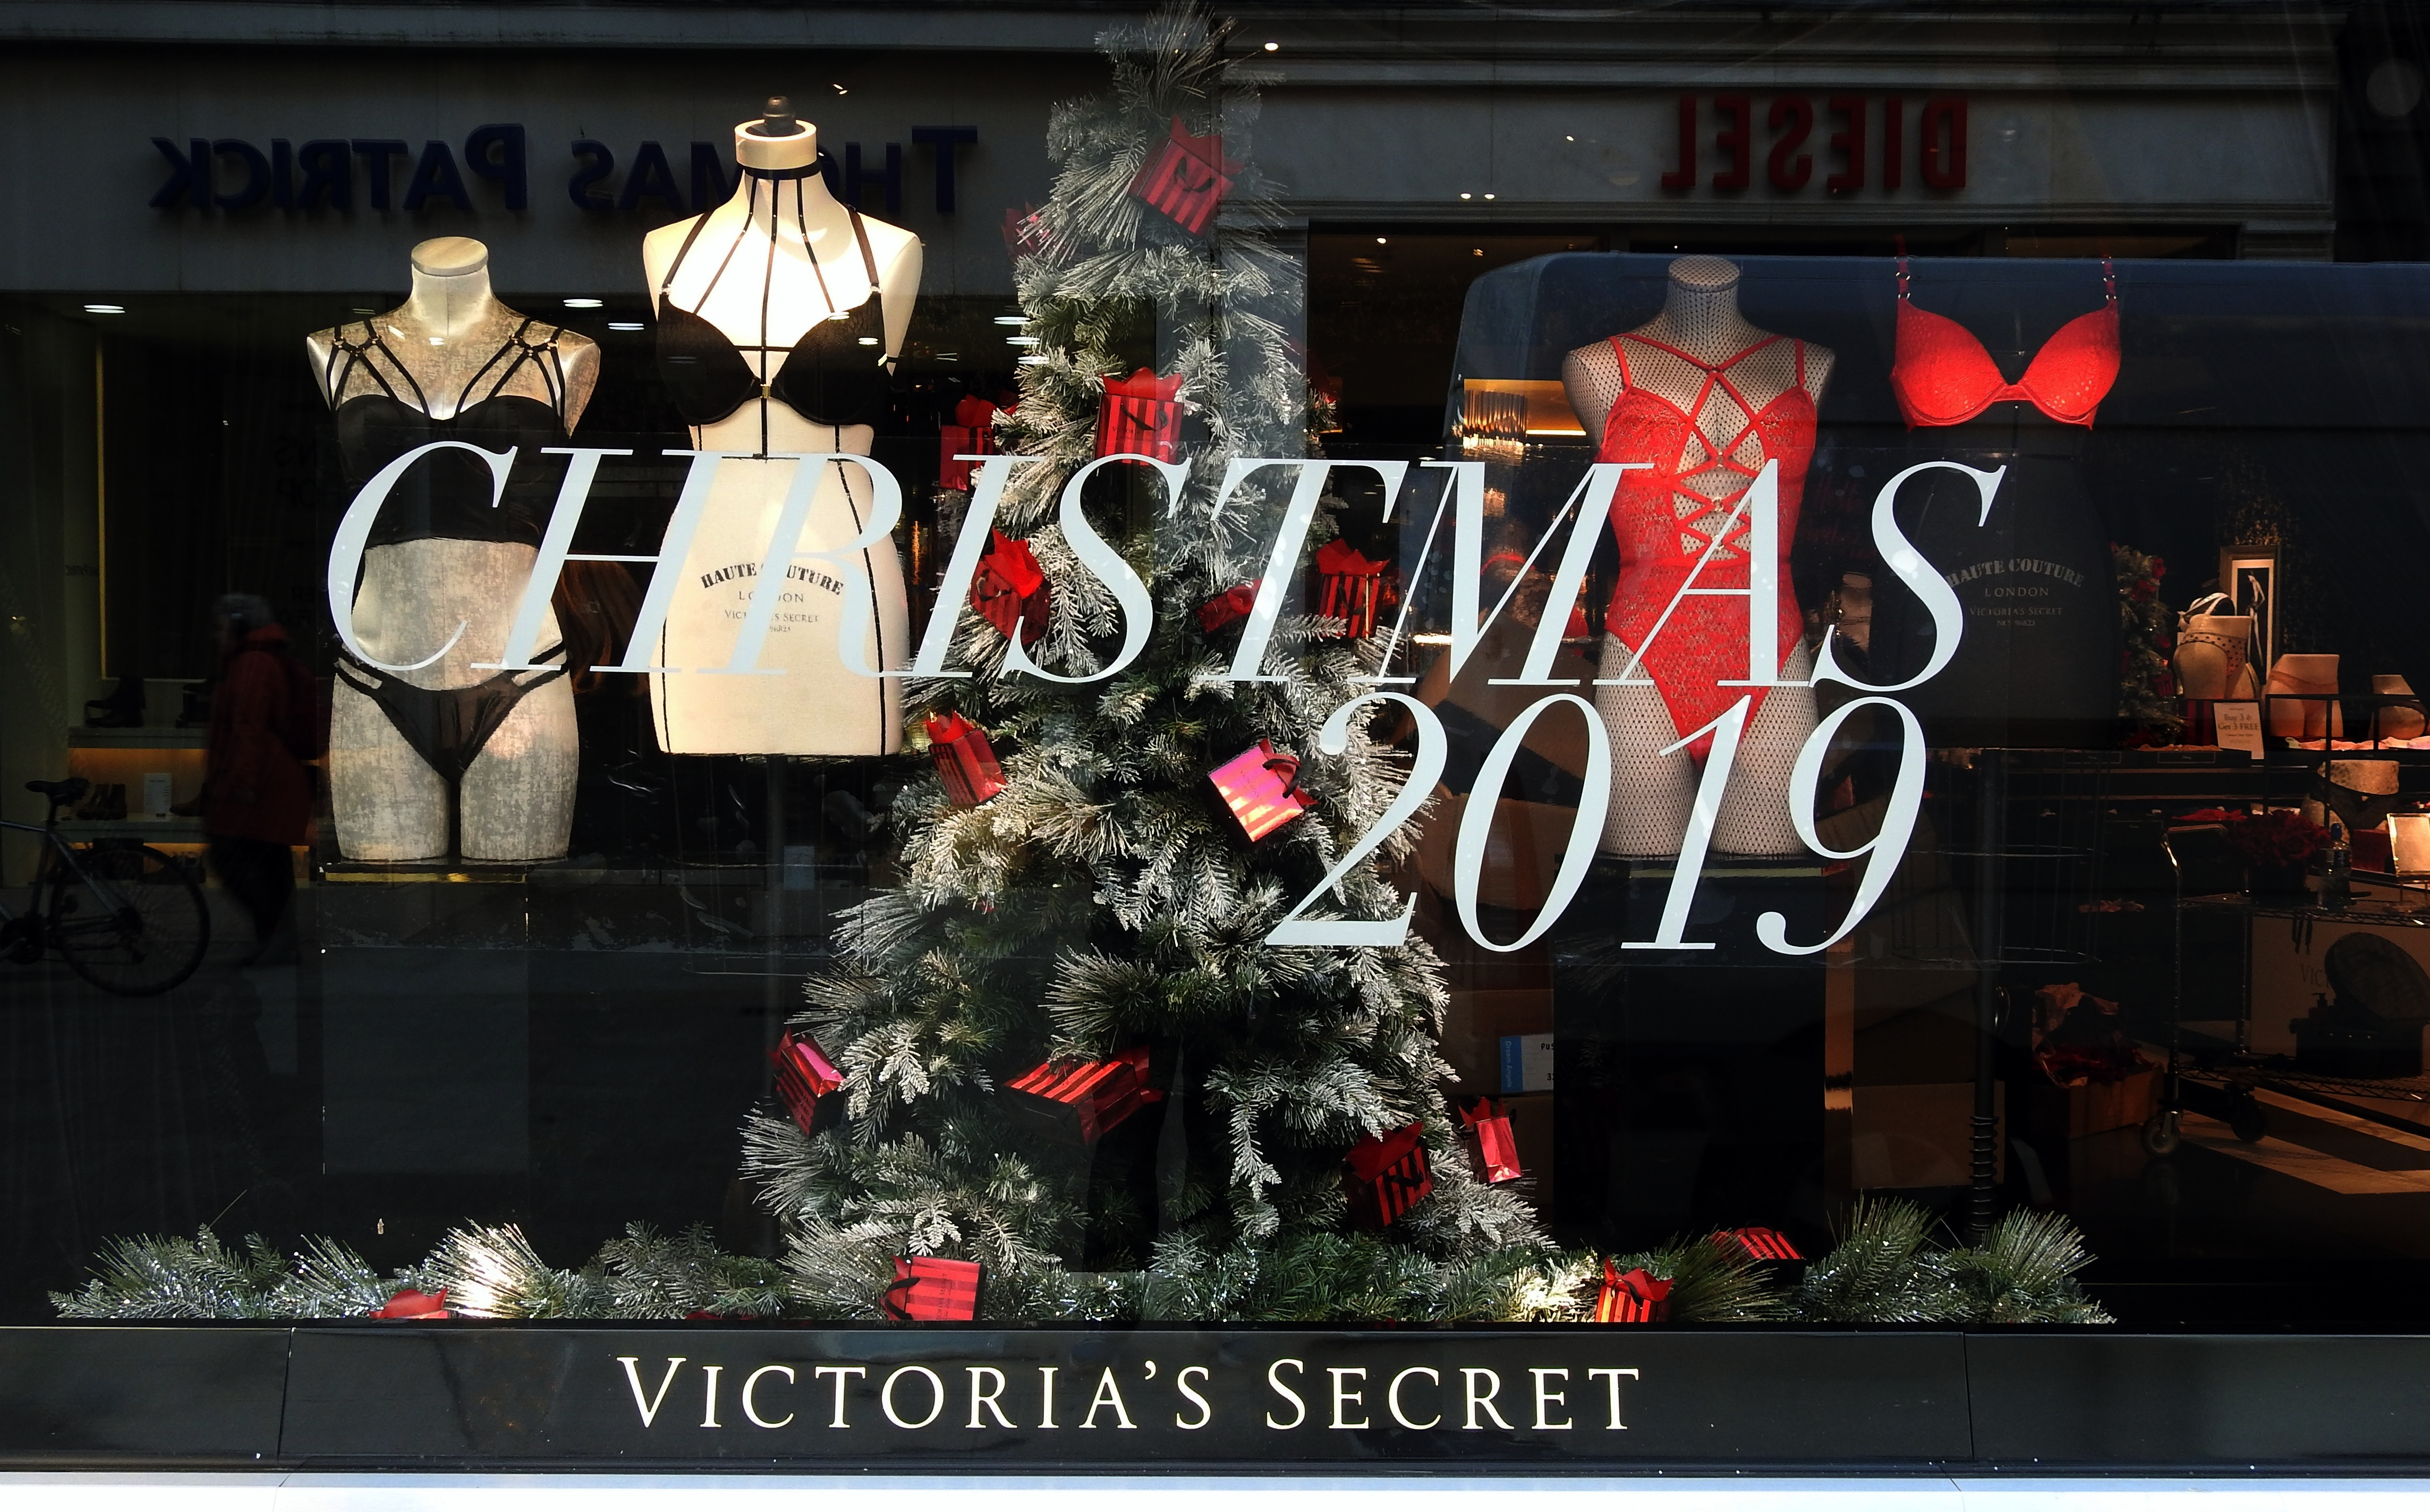 Victoria's Secret holidays